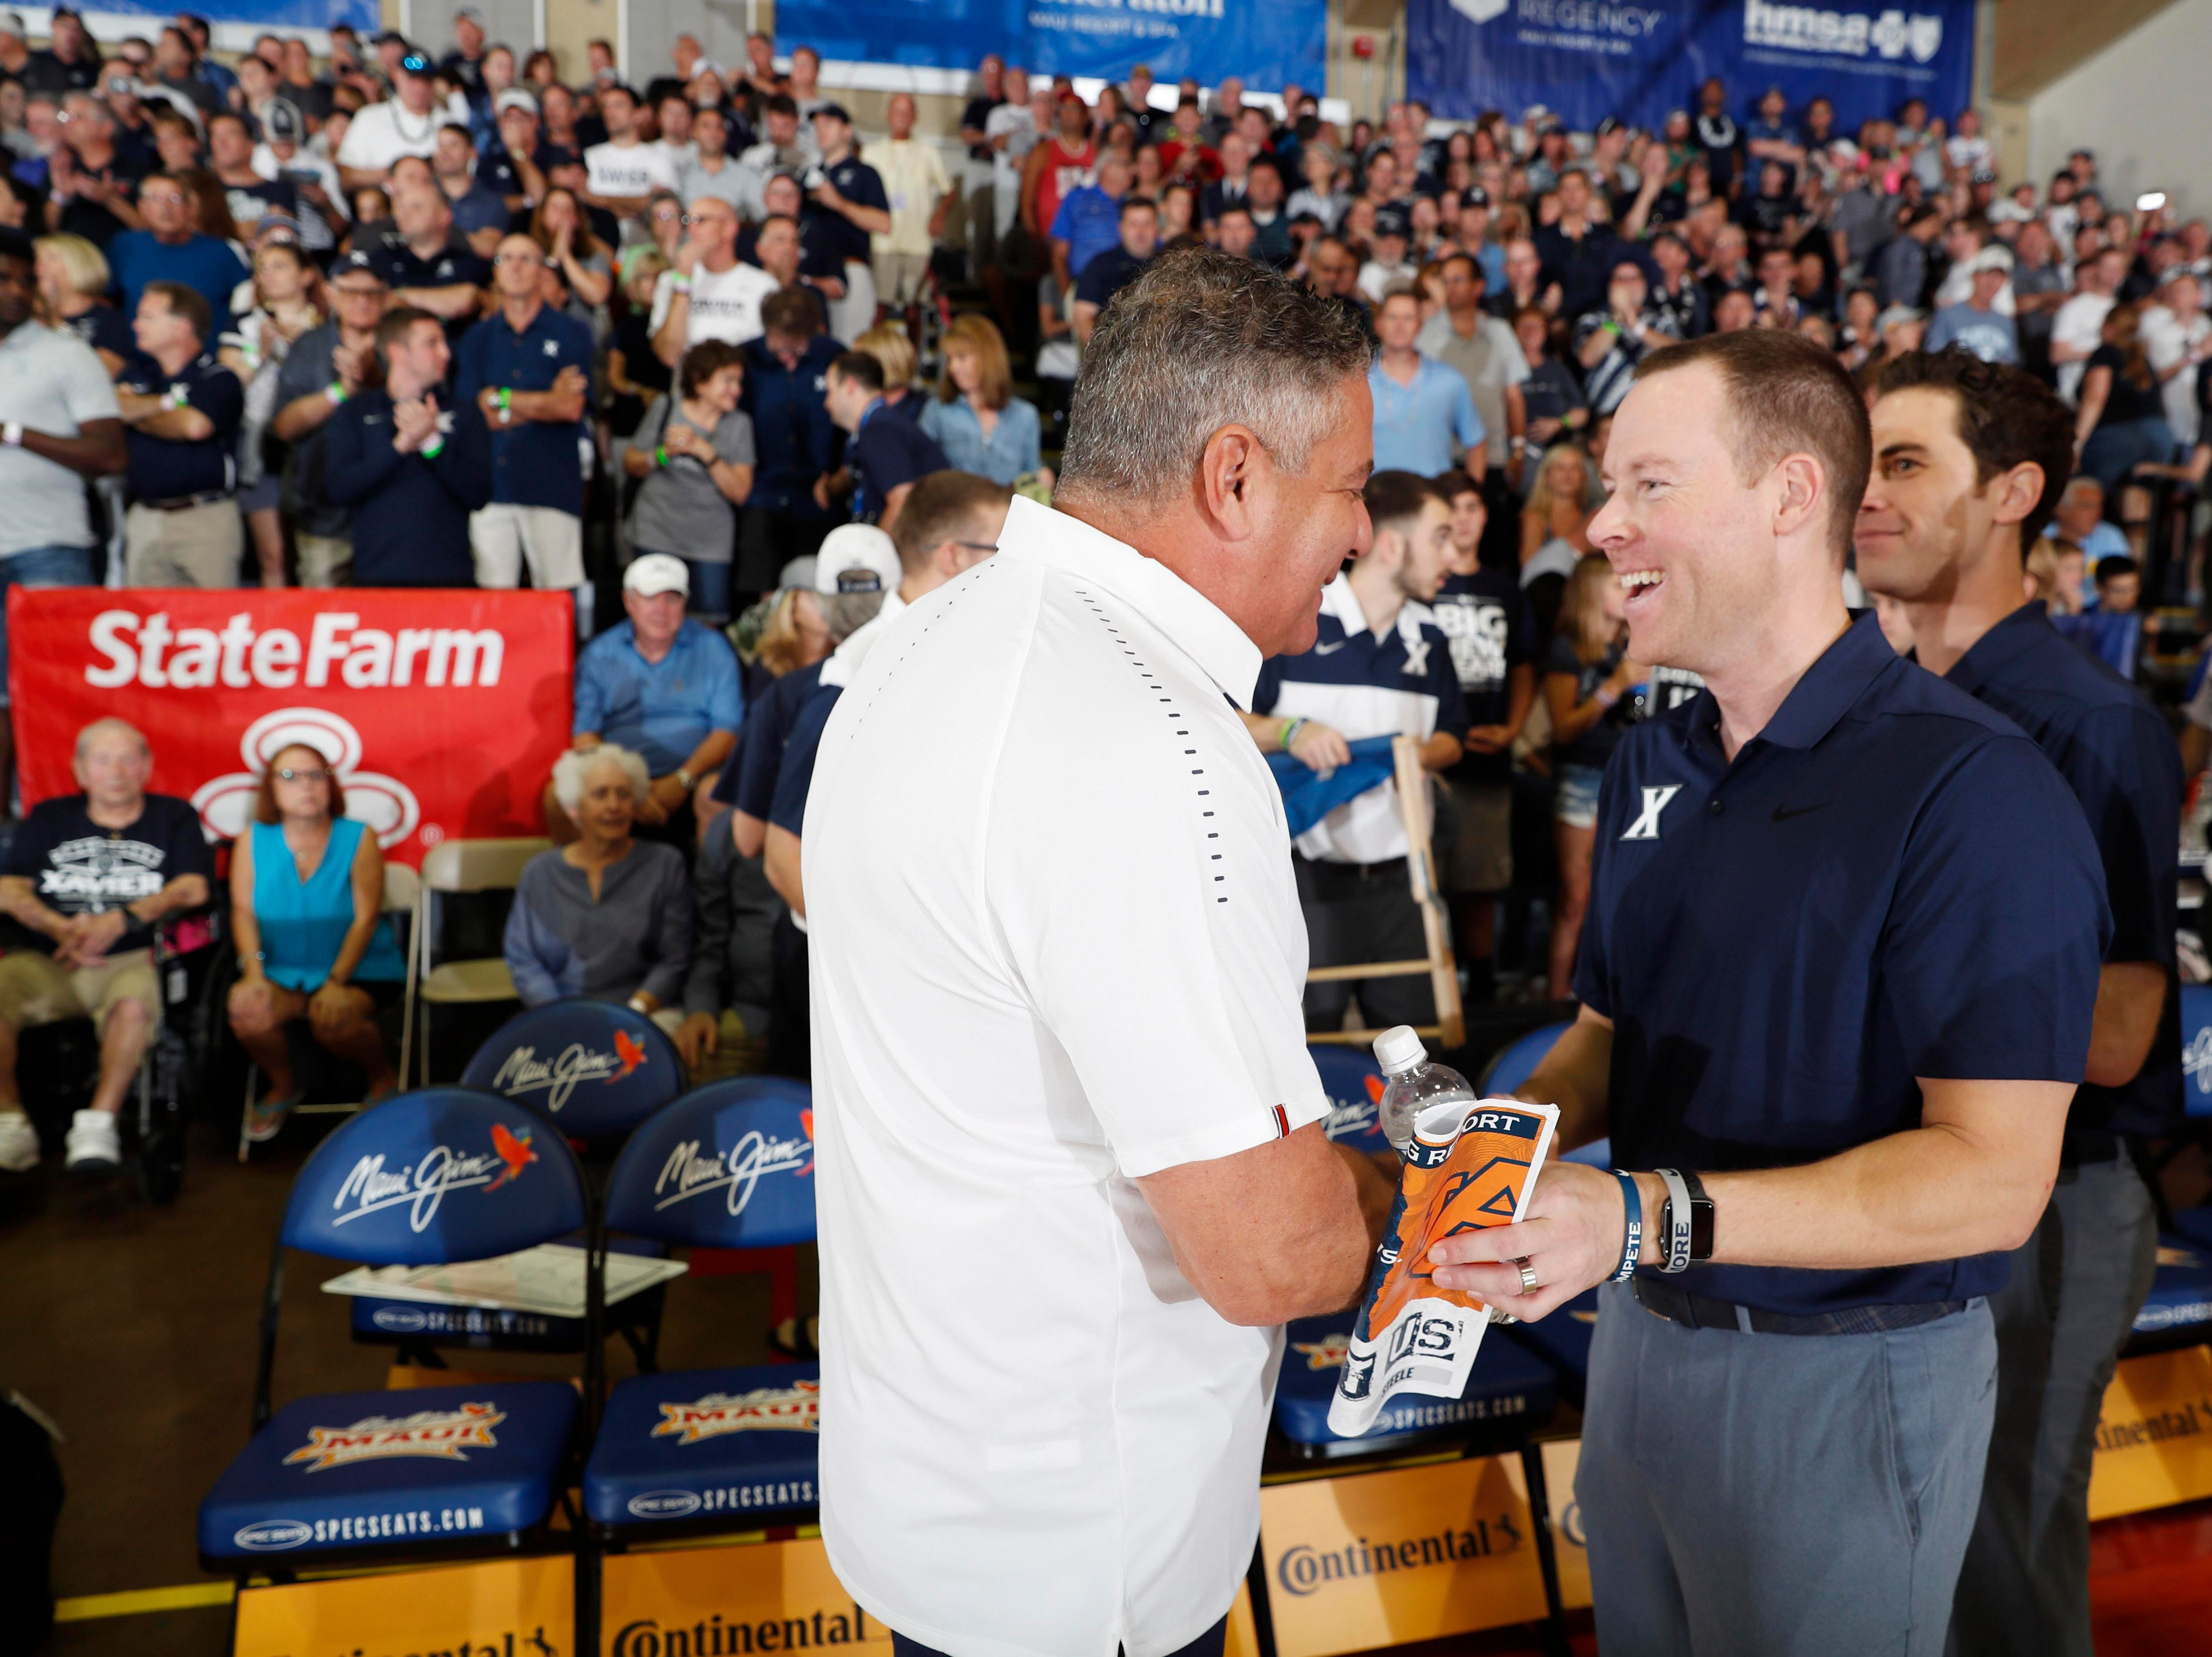 Nov 19, 2018; Lahaina, HI, USA; Auburn Tigers coach Bruce Pearl talks before the game with Xavier Musketeers coach Travis Steele during the first round games of the Maui Jim Maui Invitational at Lahaina Civic Center. Mandatory Credit: Brian Spurlock-USA TODAY Sports